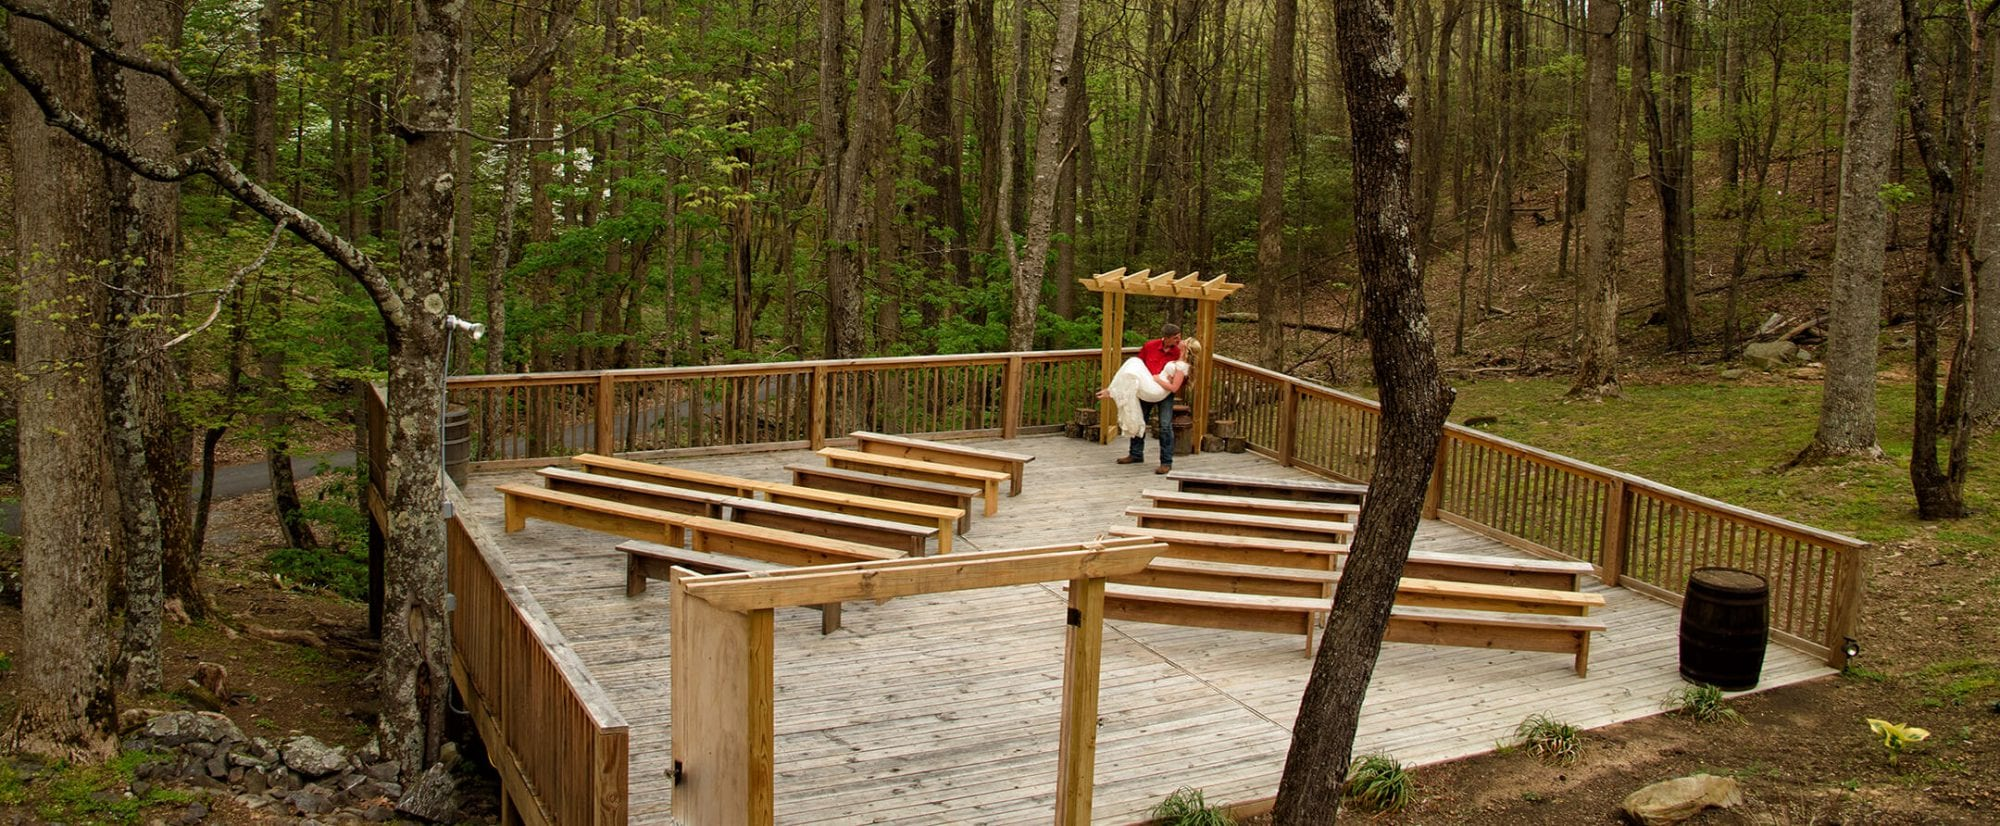 Little Mountain Hideaway wedding ceremony site in Pigeon Forge, TN